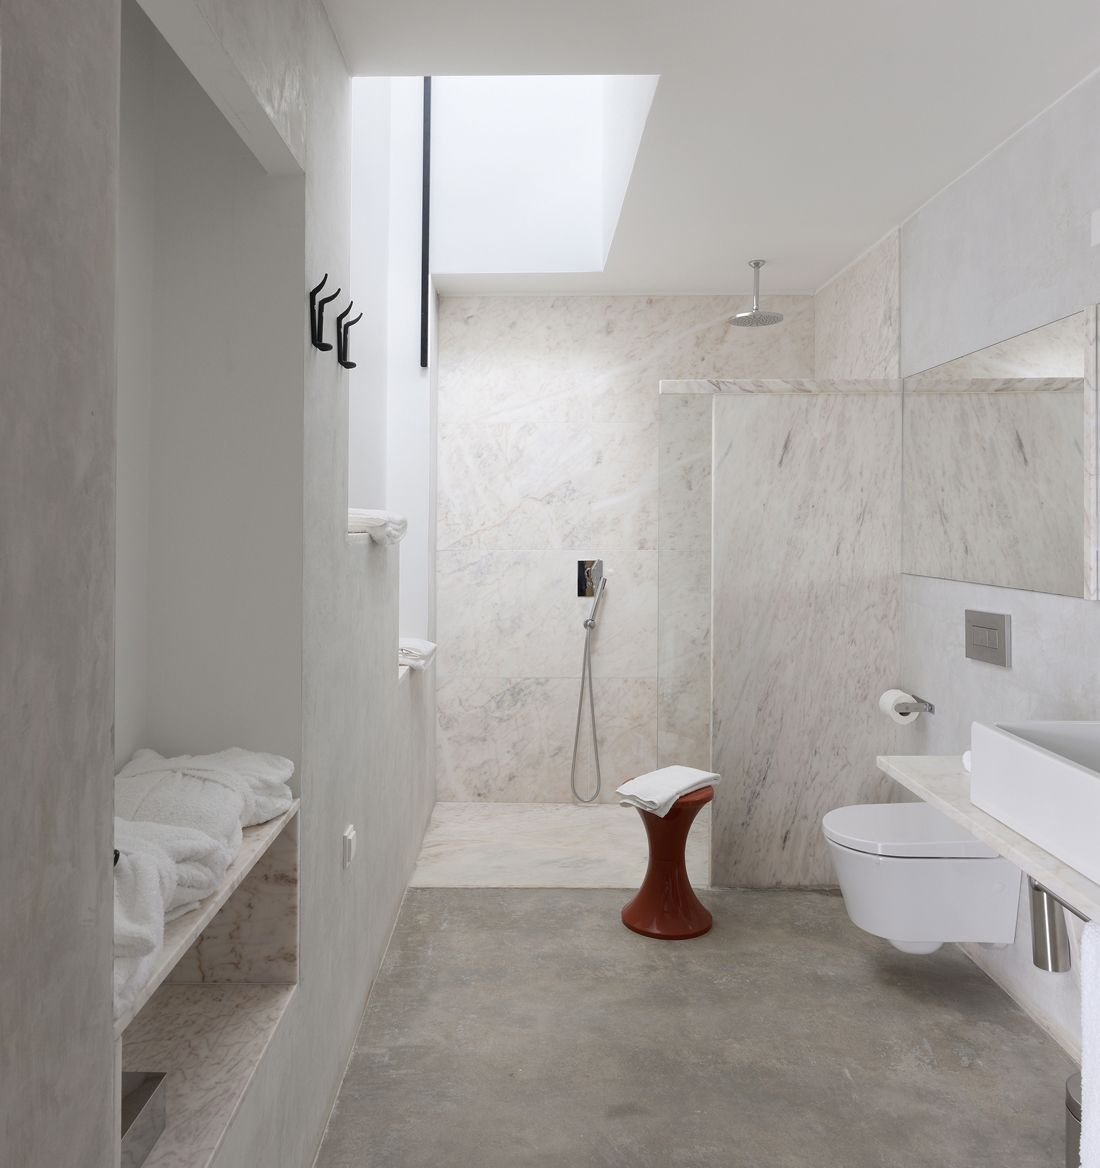 30 Marble Bathroom Design Ideas Styling Up Your Private Daily Rituals Freshome Com Marble Bathroom Designs Small Bathroom Remodel Bathroom Interior